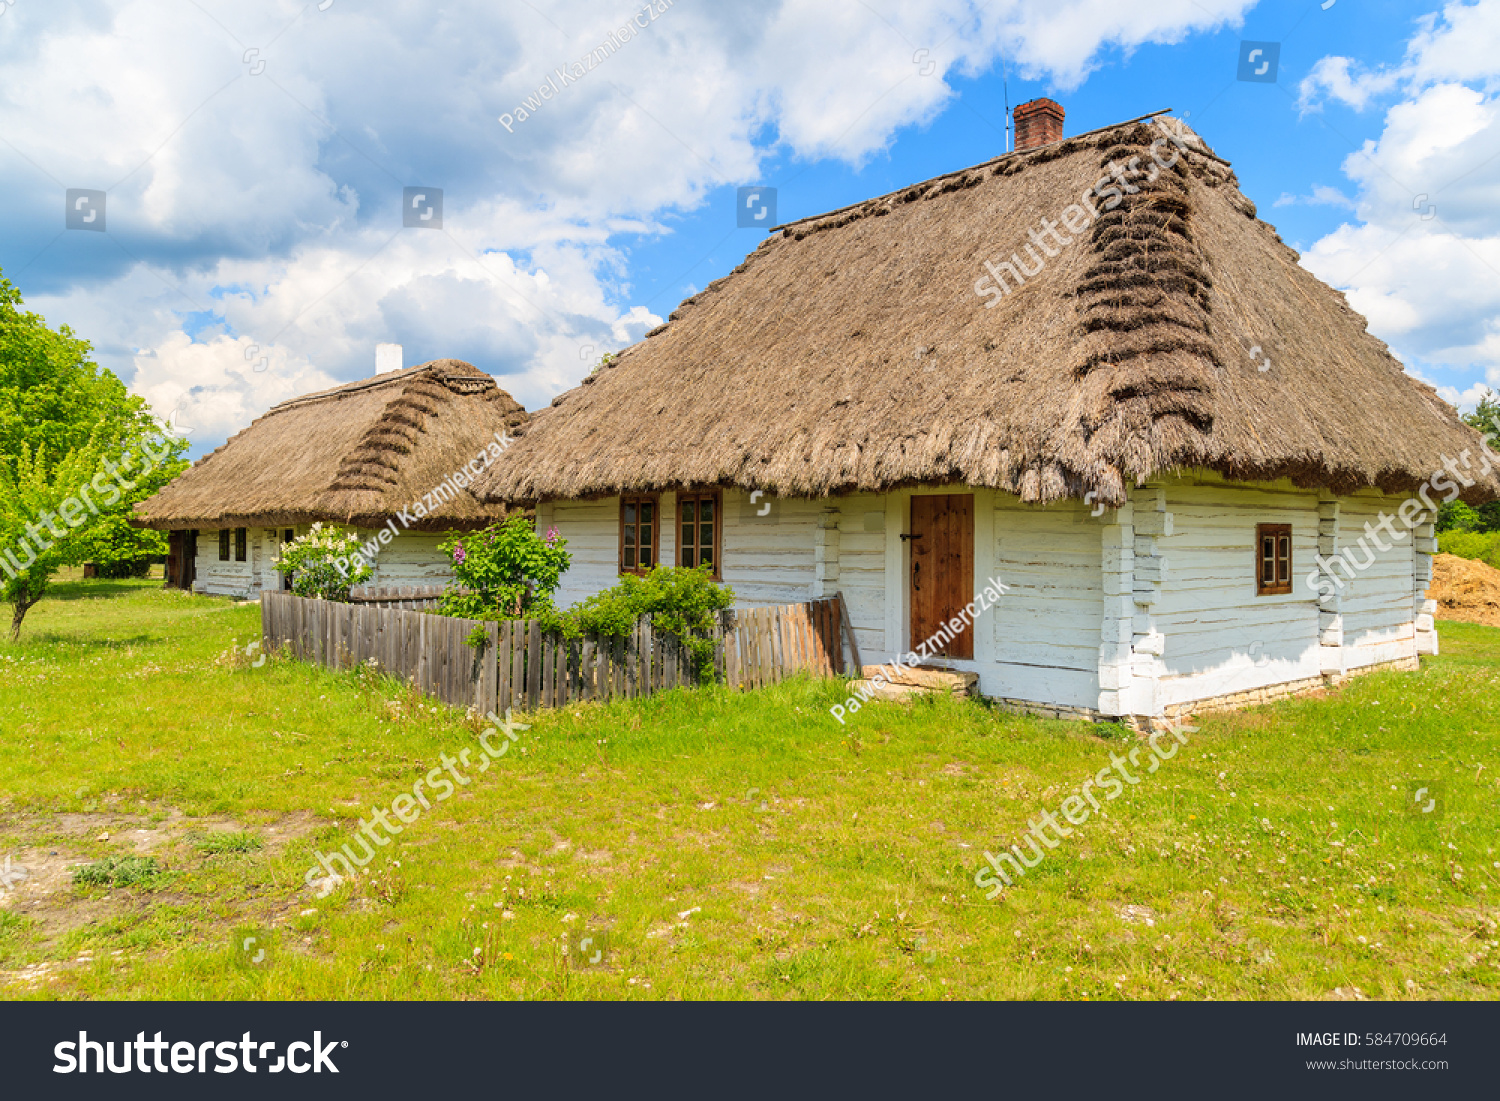 Old traditional houses straw roof tokarnia stock photo for Old traditional houses